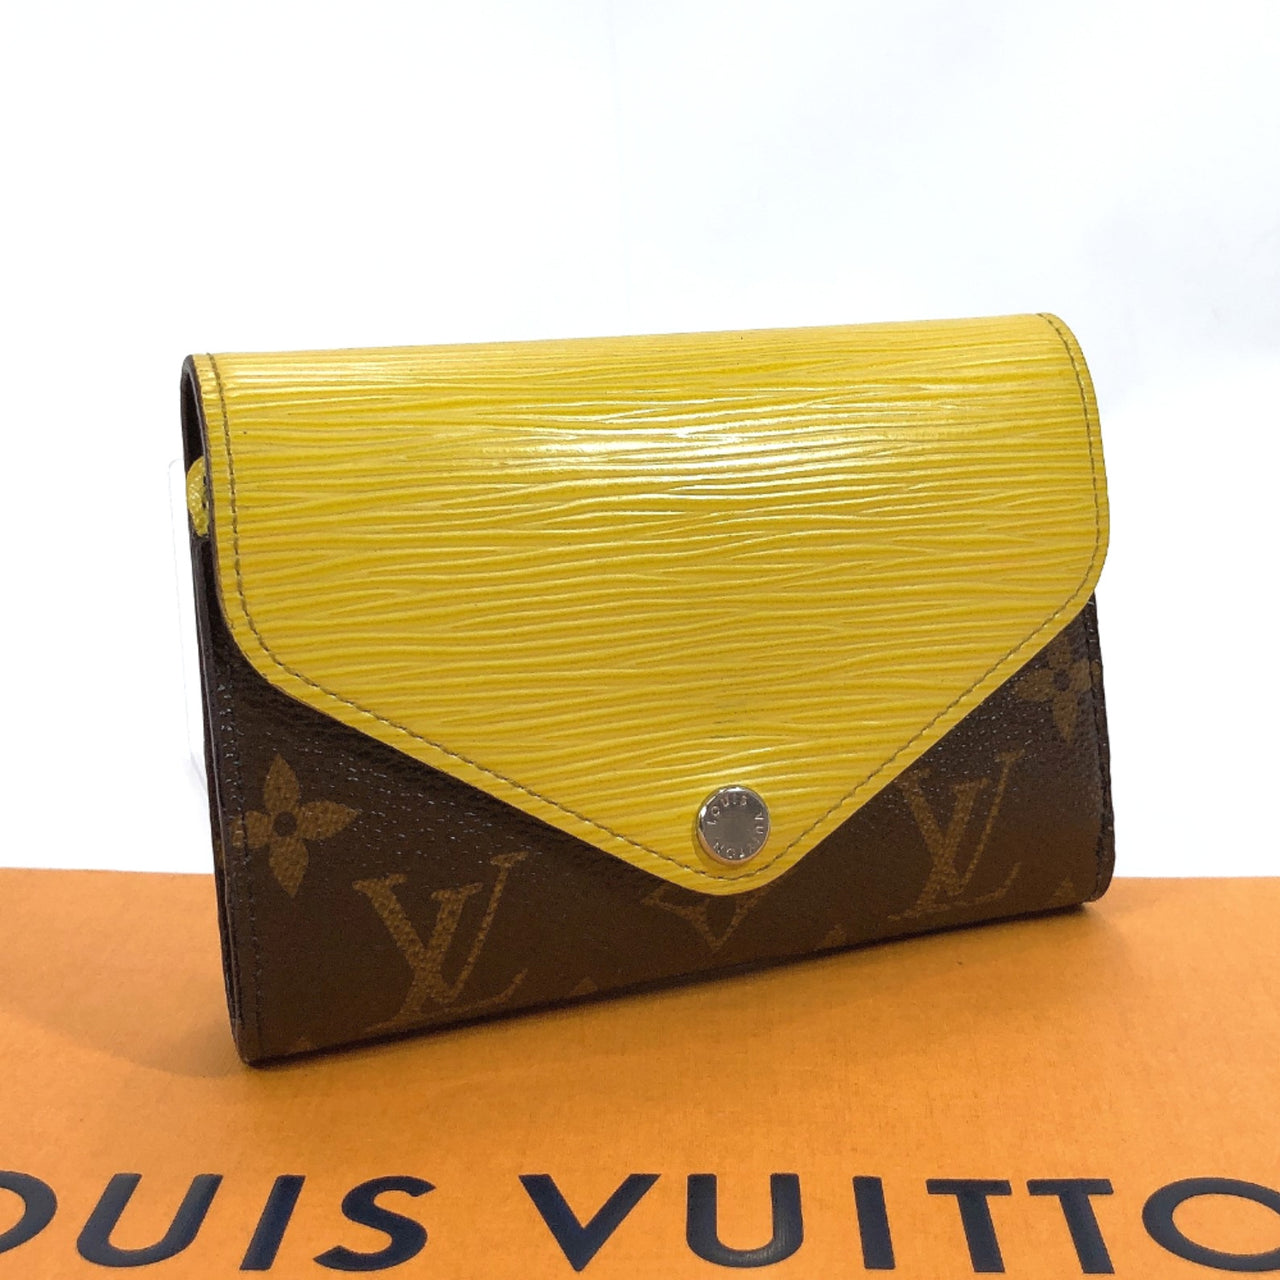 LOUIS VUITTON Tri-fold wallet M60427 Portefeiulle Mary Lou/Epi Leather/Monogram Brown yellow Used